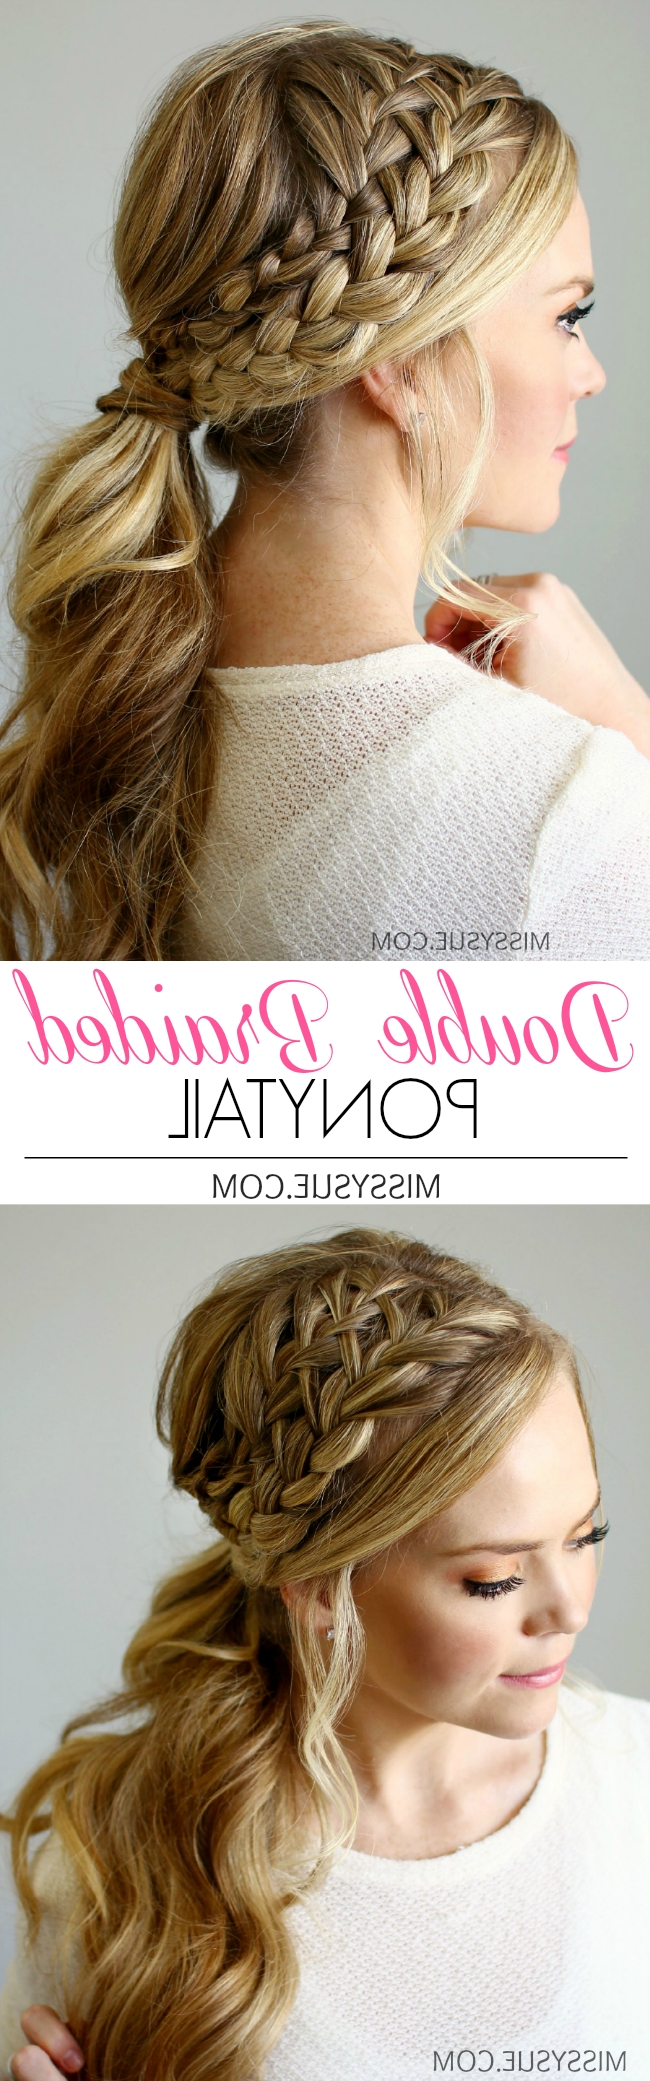 Double Braided Ponytail In Most Recent Braided Hairstyles In A Ponytail (View 11 of 15)